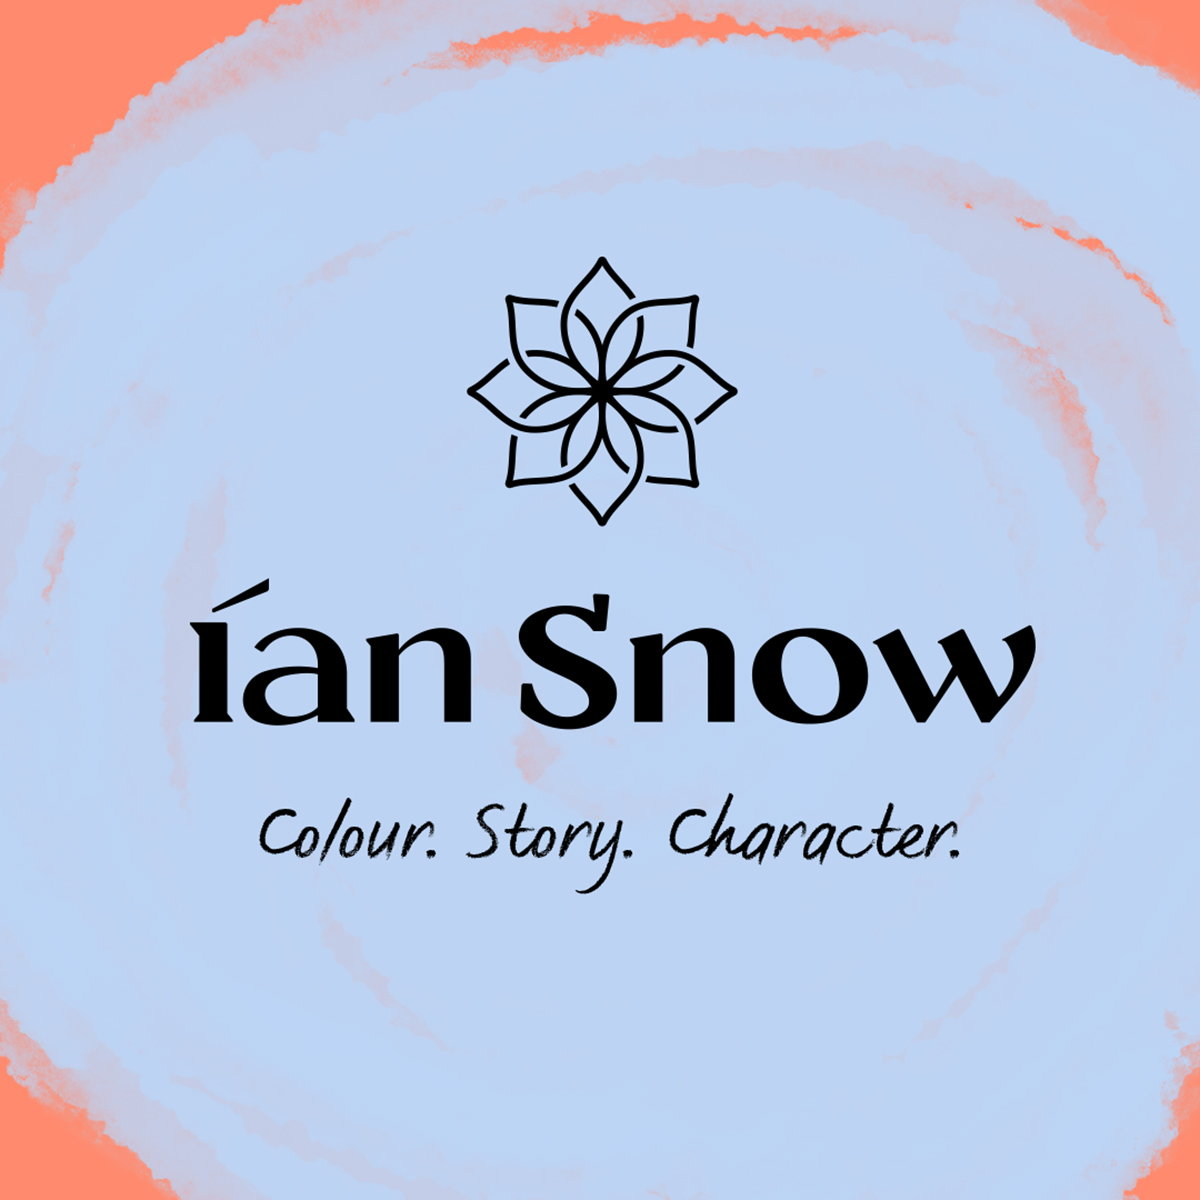 Ian Snow Launches New Verbal and Visual Identity